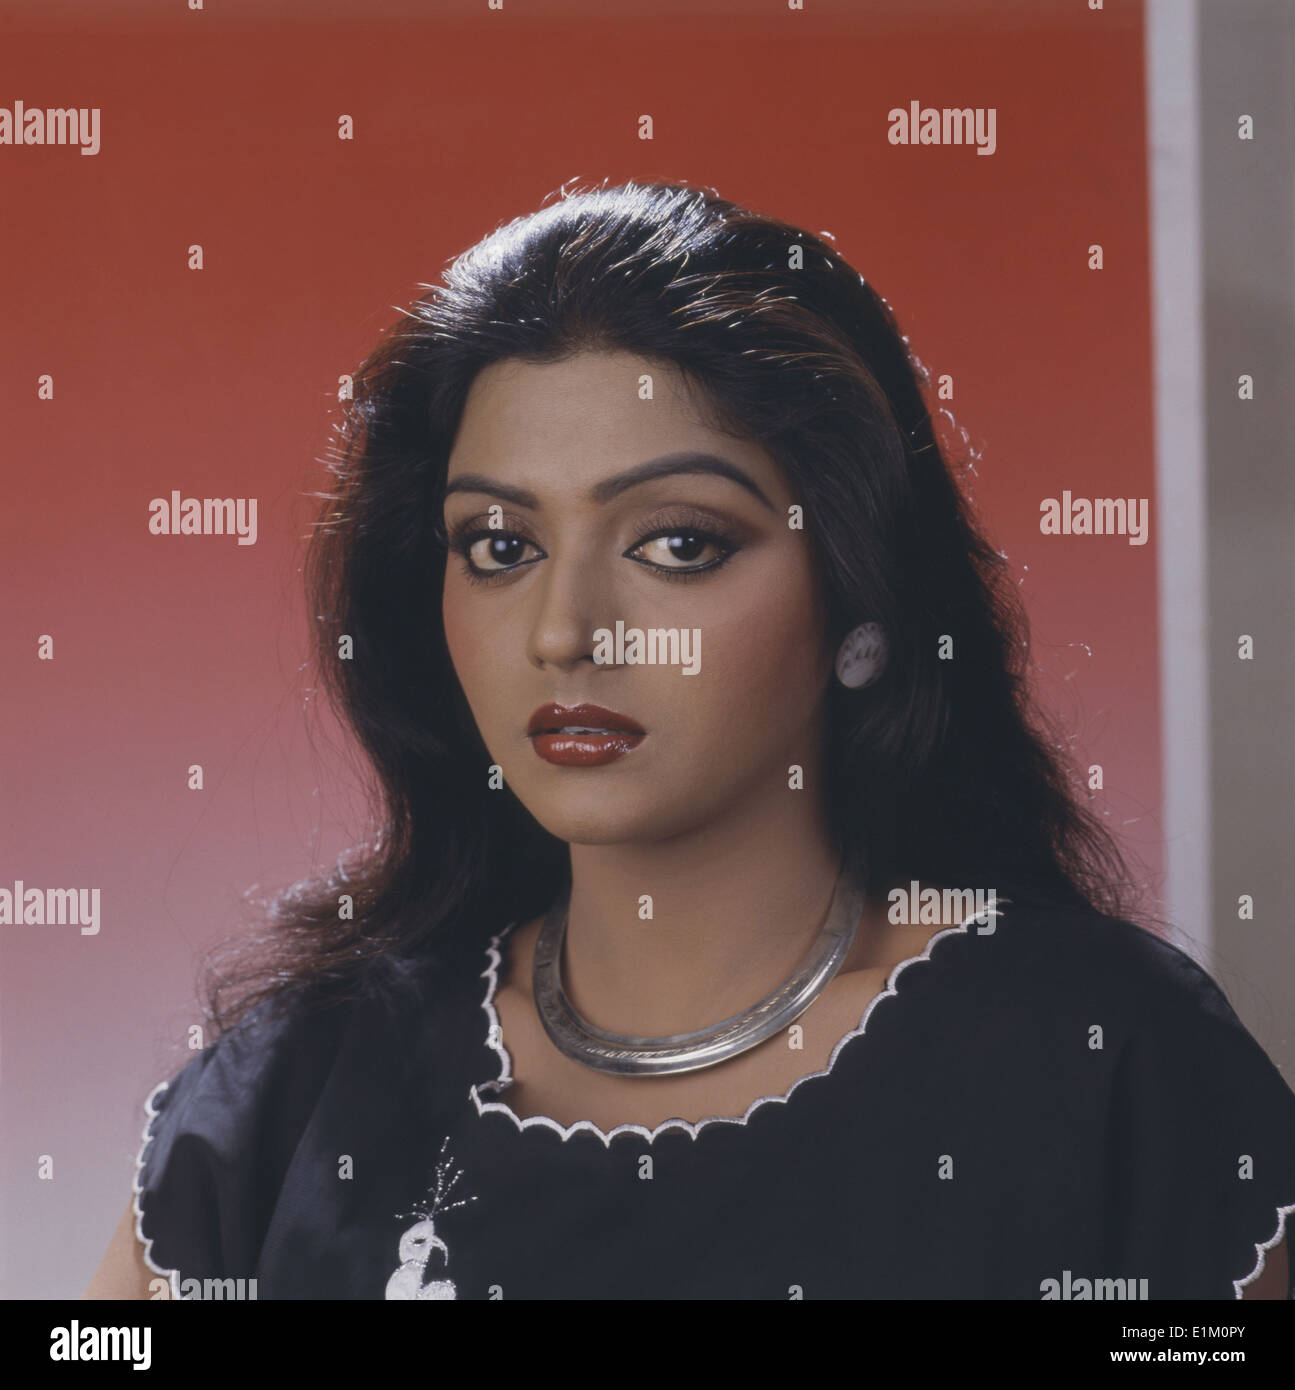 banupriya blue film